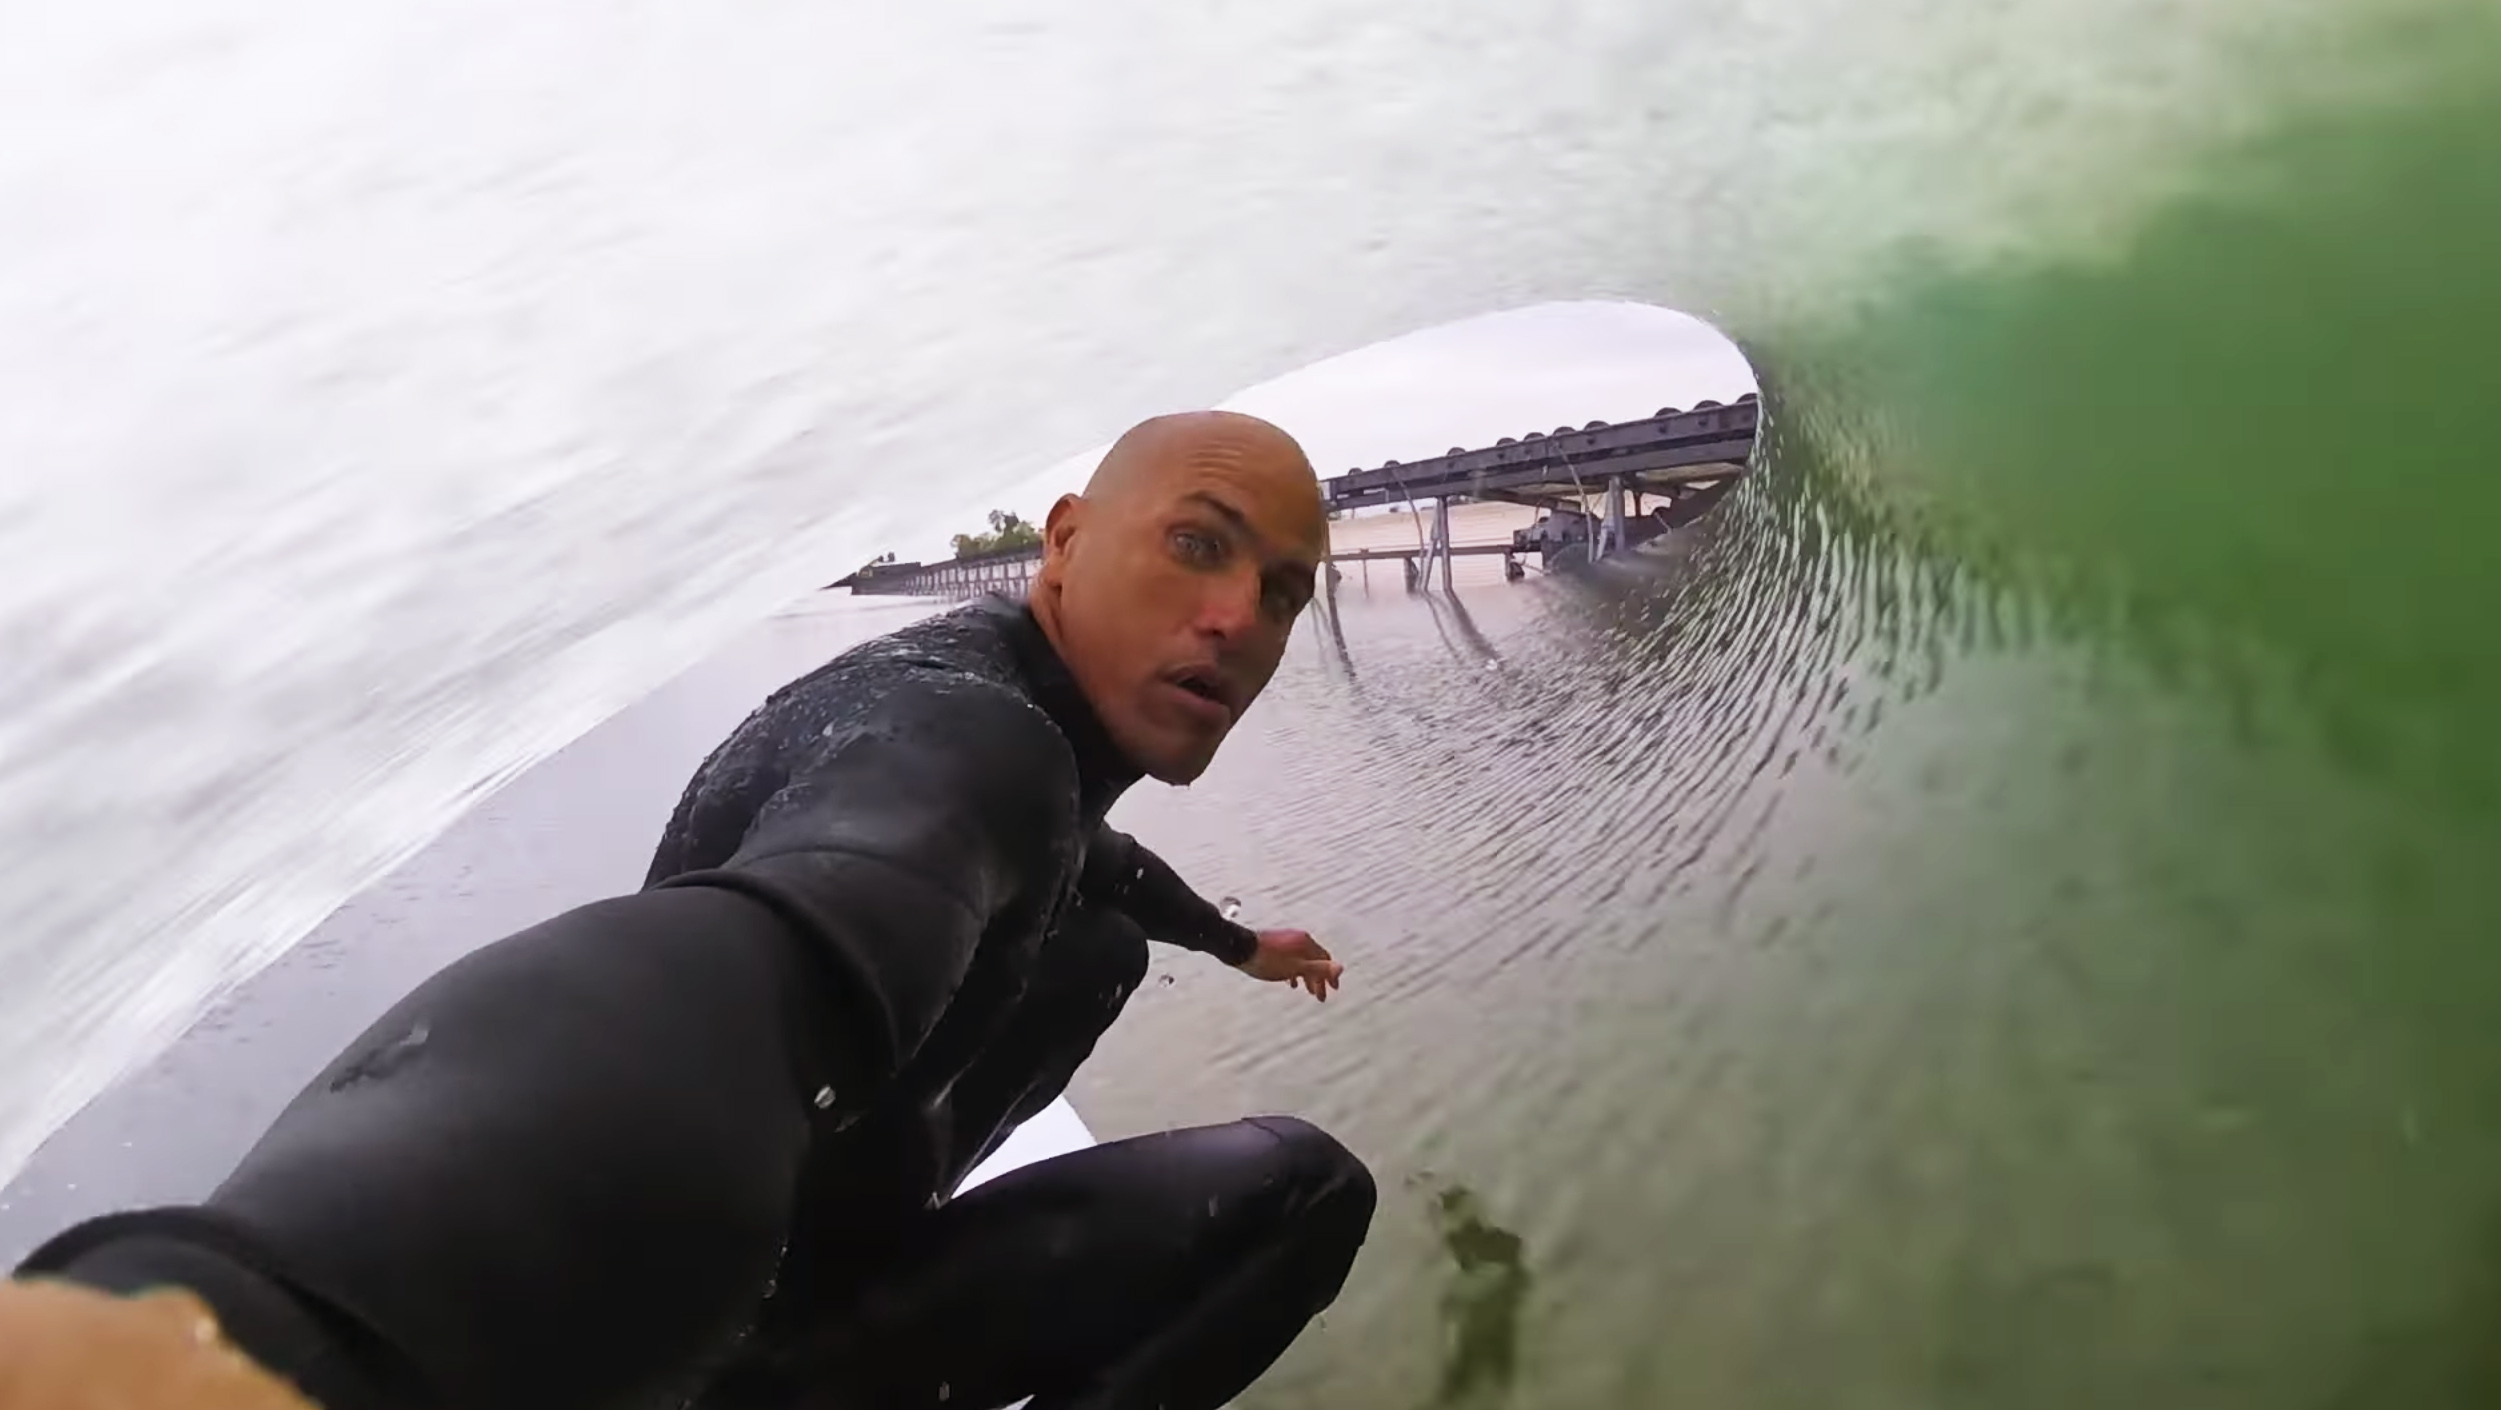 Kelly Slater riding an artificial wave in California